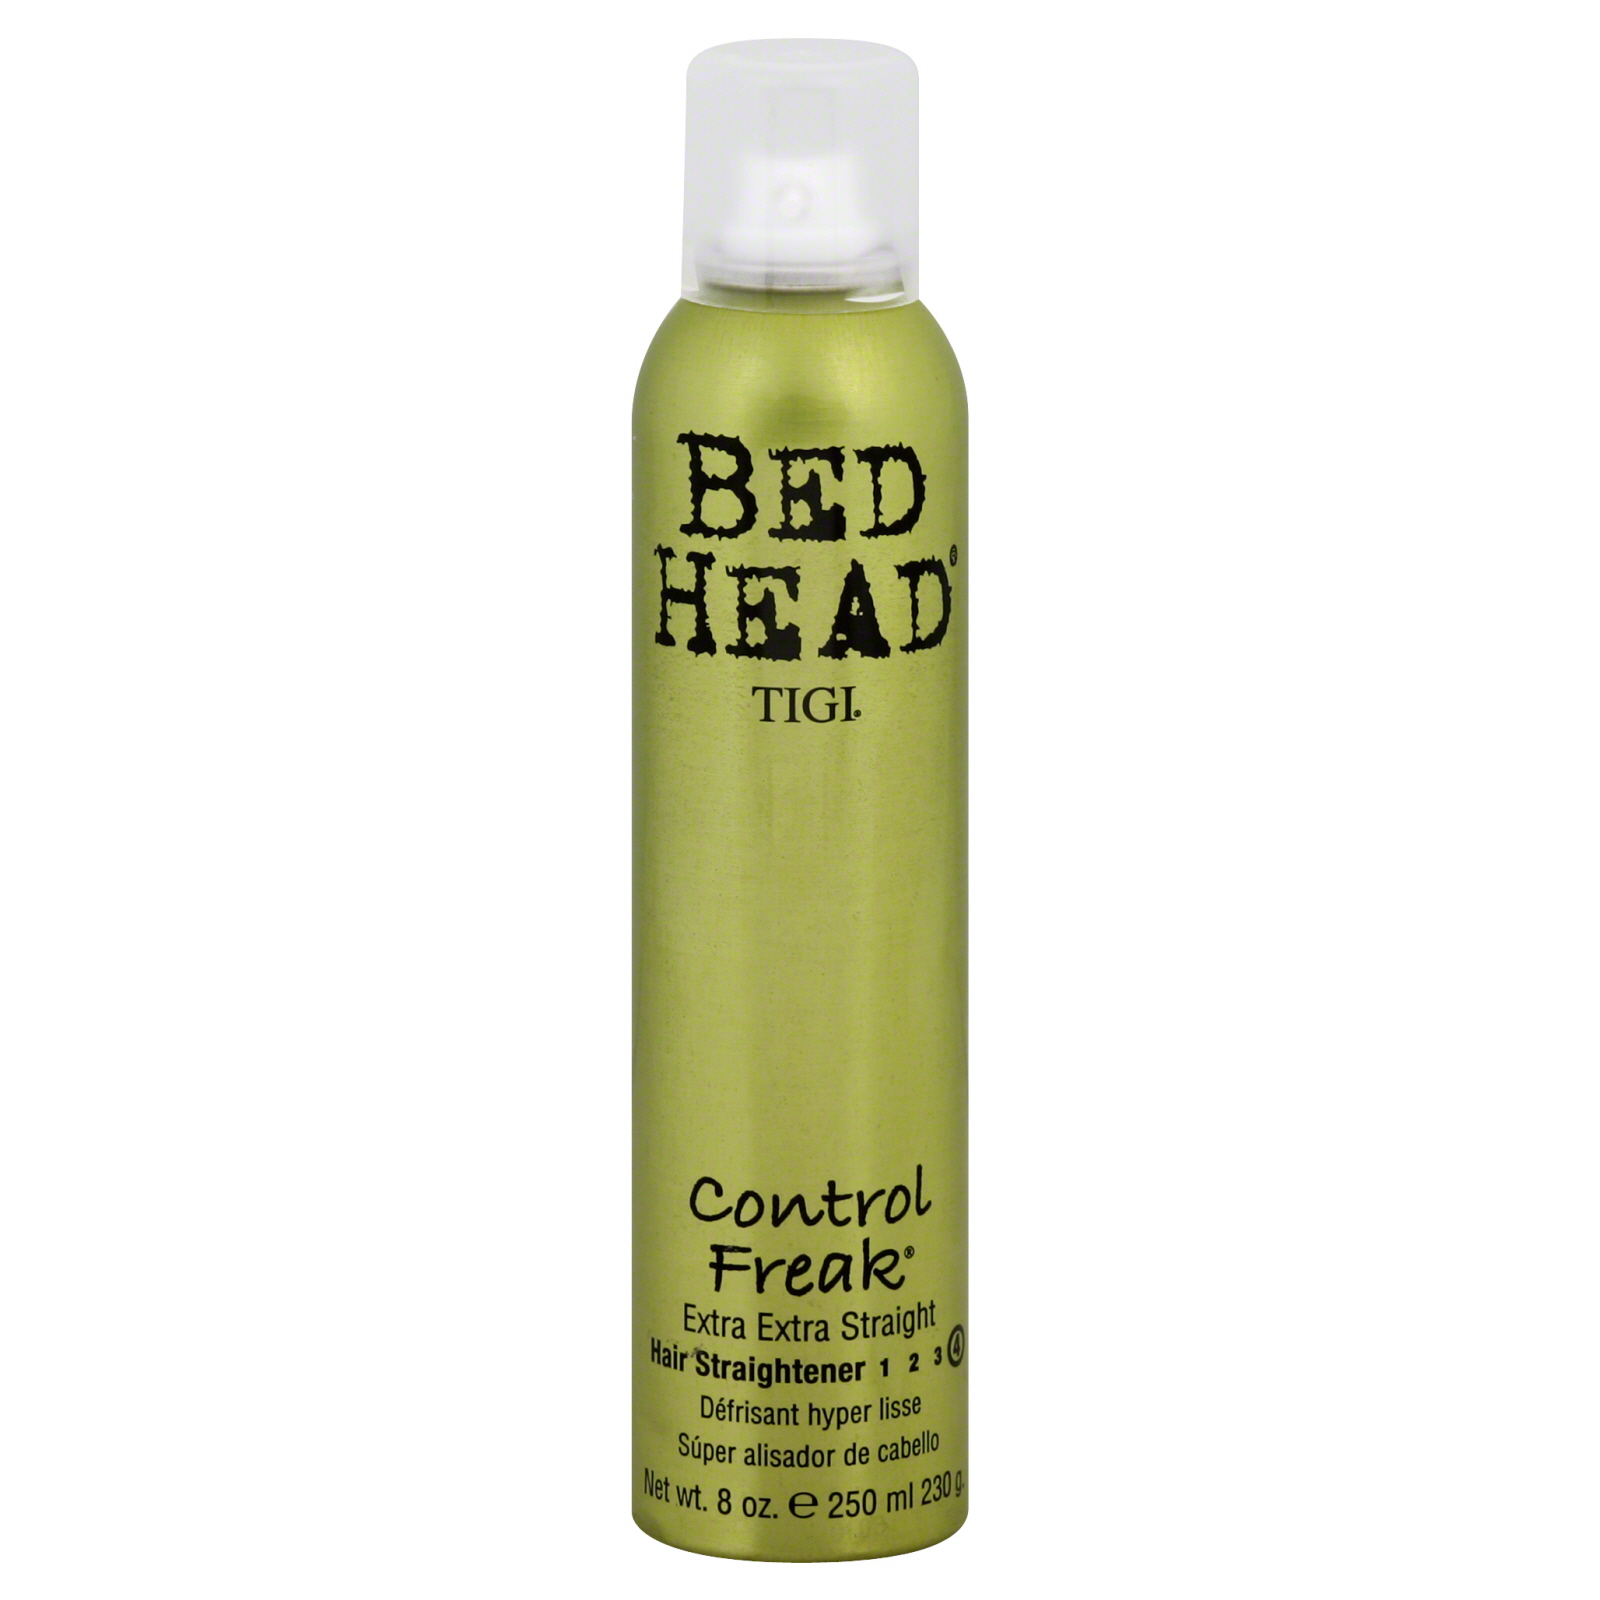 Bed Head Control Freak Hair Straightener Extra Extra Straight Step 4 8 oz 250 ml